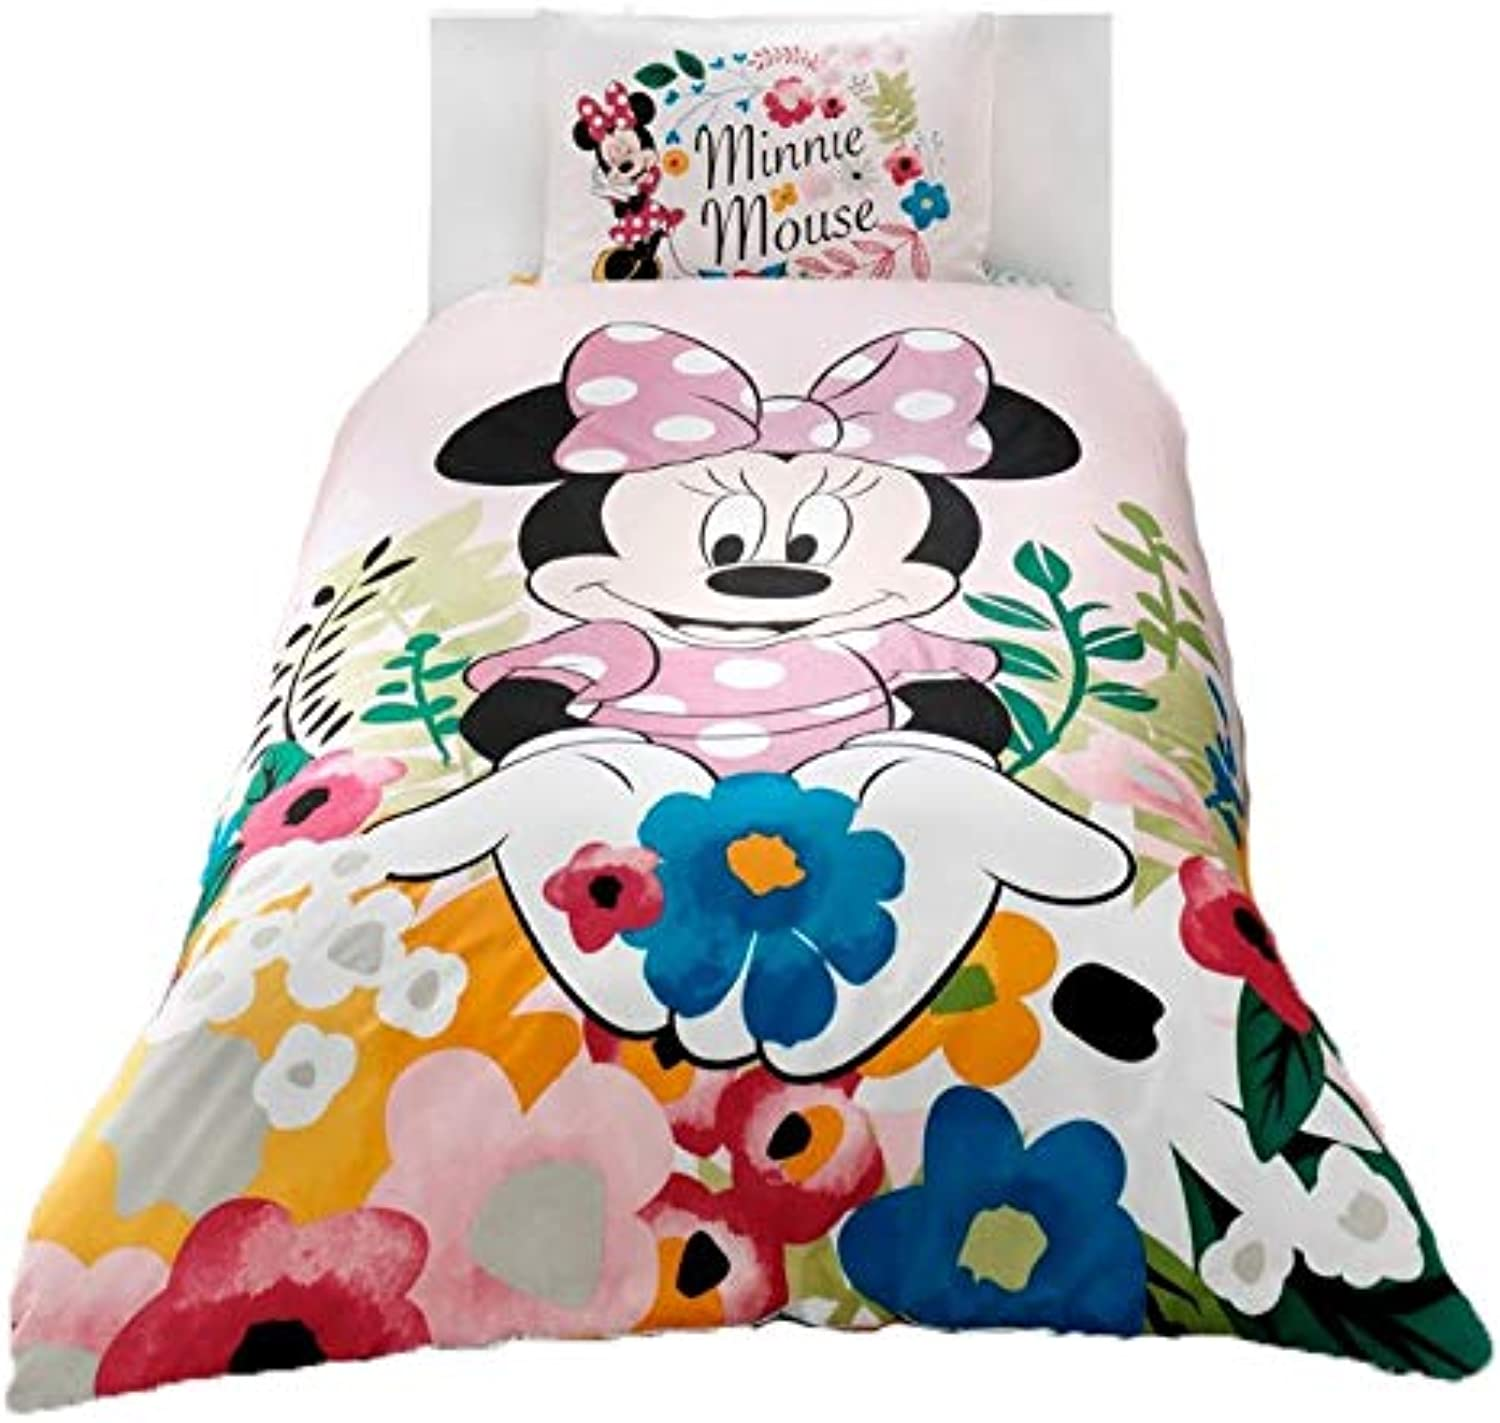 Wellstil Minnie Mouse Glitter0 Cotton Girl's Kid's Duvet Quilt Cover Set Single Twin Size Kids Bedding